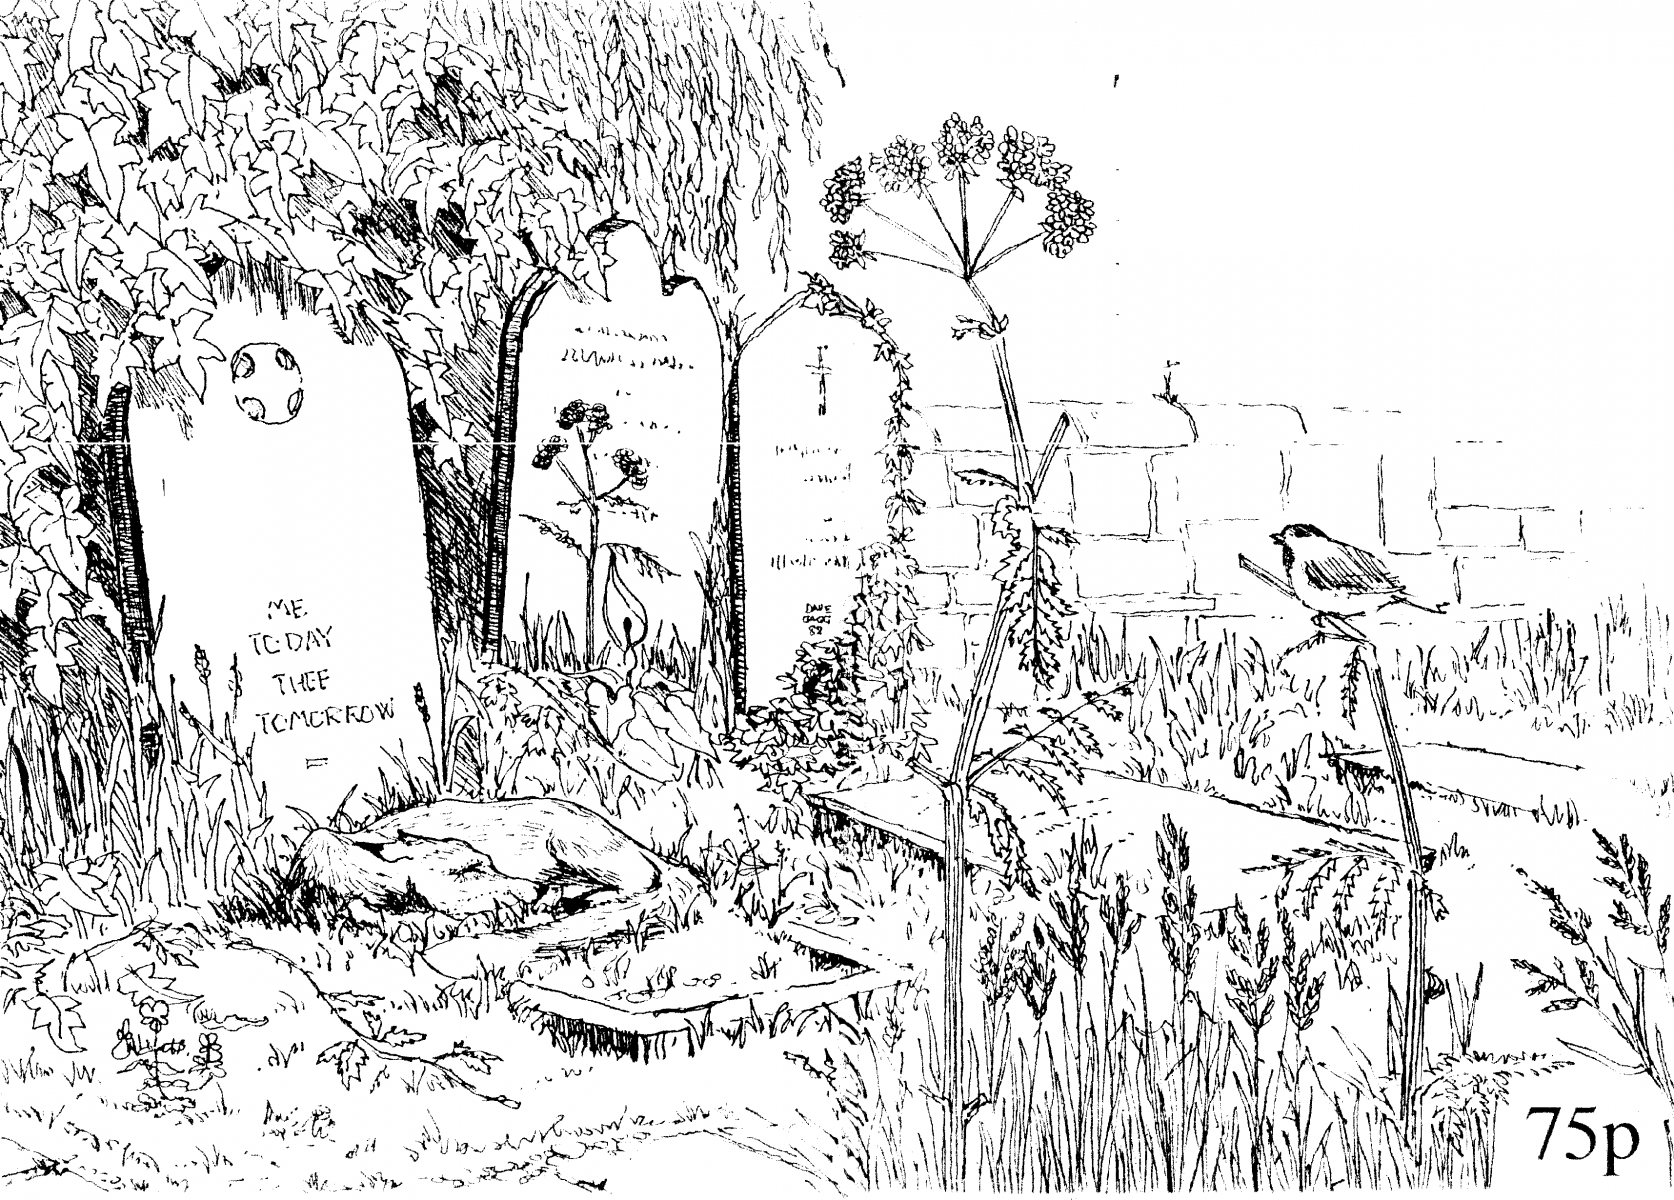 Doncaster-Naturalist Cover Sketch by David Gagg